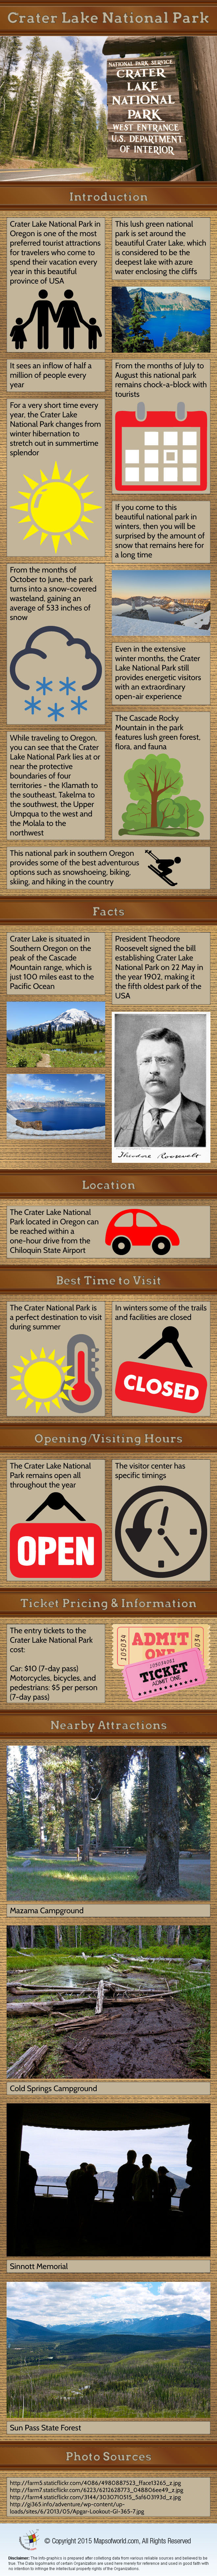 Crater Lake National Park Infographic